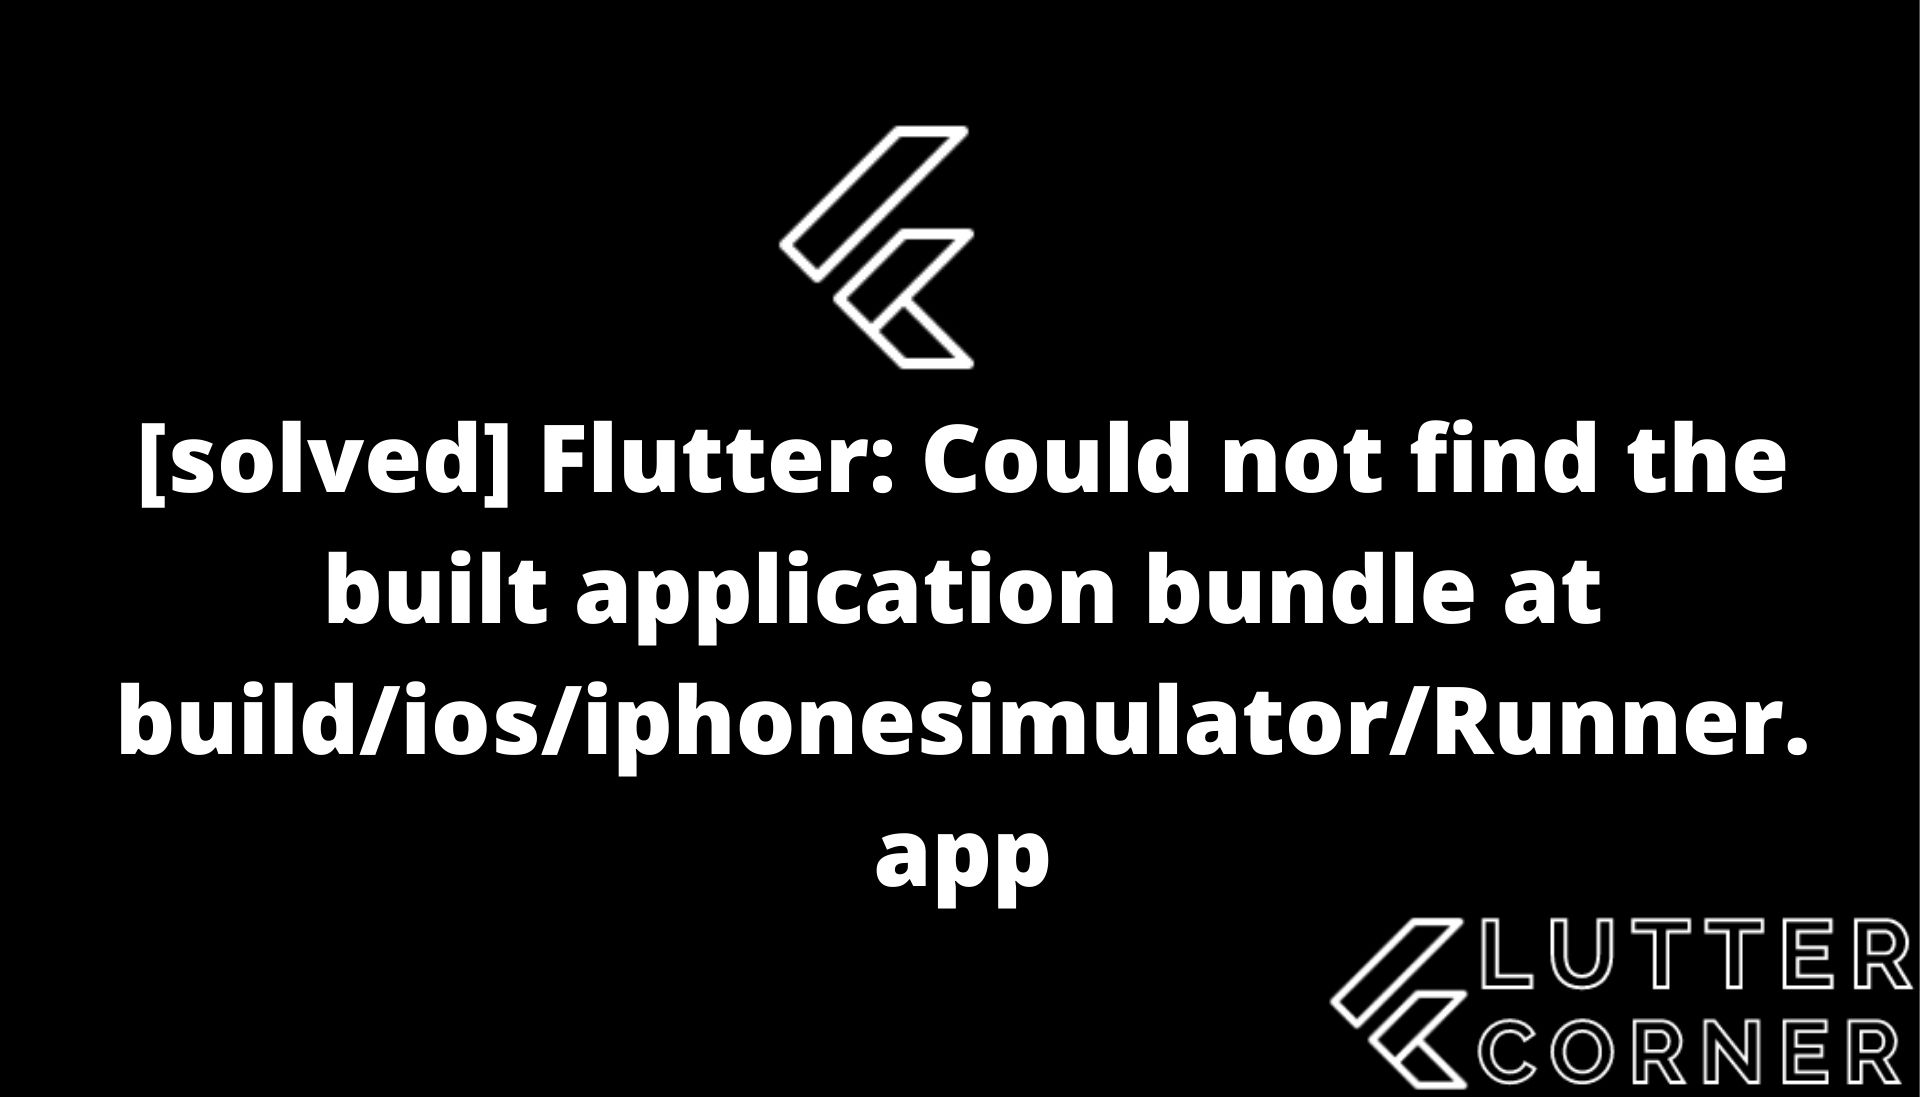 built application bundle at build/ios/iphonesimulator/runner.app, Could not find the built application bundle at build/ios/iphonesimulator/Runner.app, Flutter: Could not find the built application bundle at build/ios/iphonesimulator/Runner.app